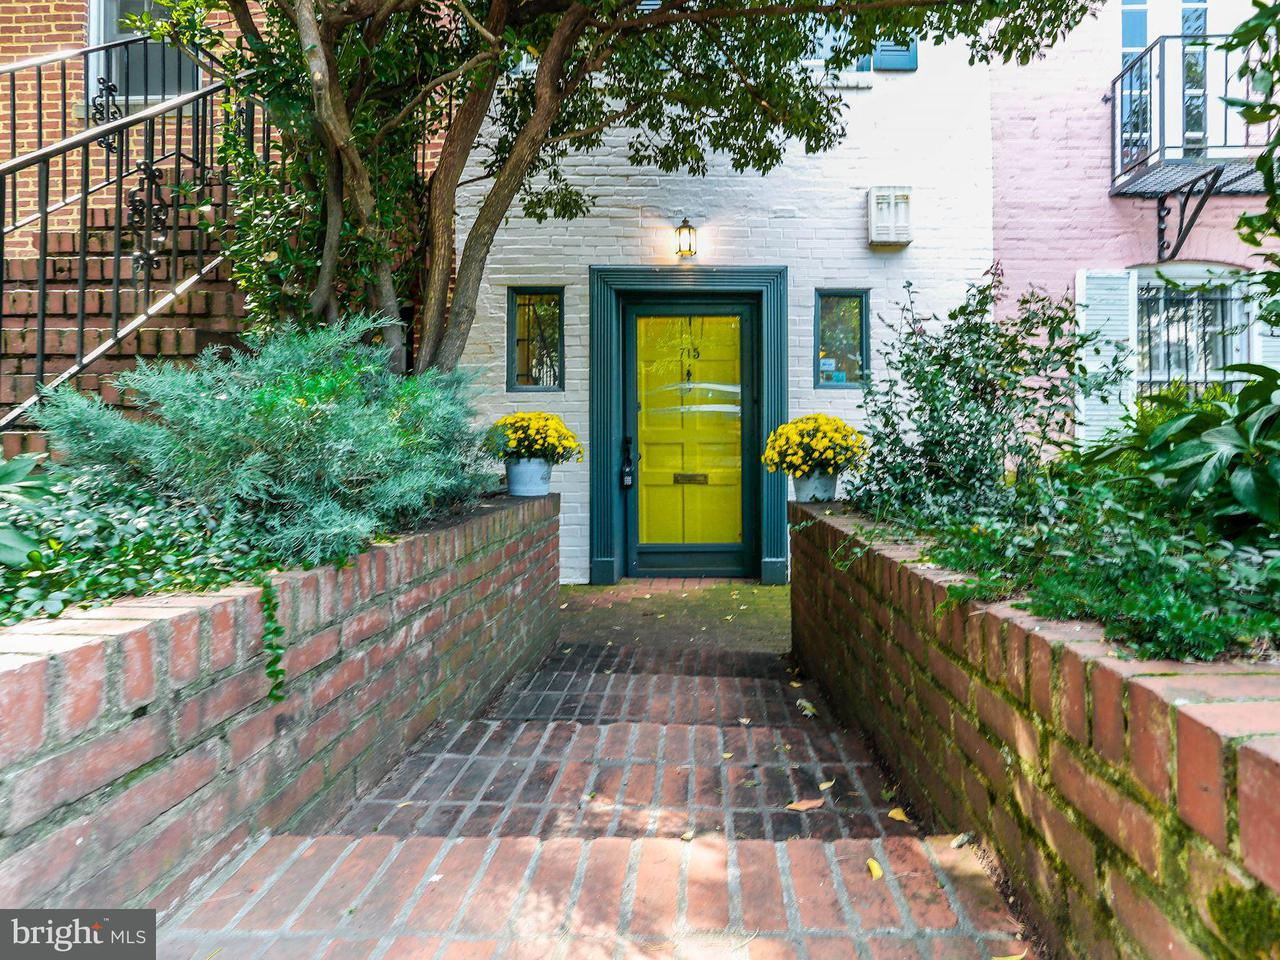 Townhouse for Sale at 715 A ST NE 715 A ST NE Washington, District Of Columbia 20002 United States